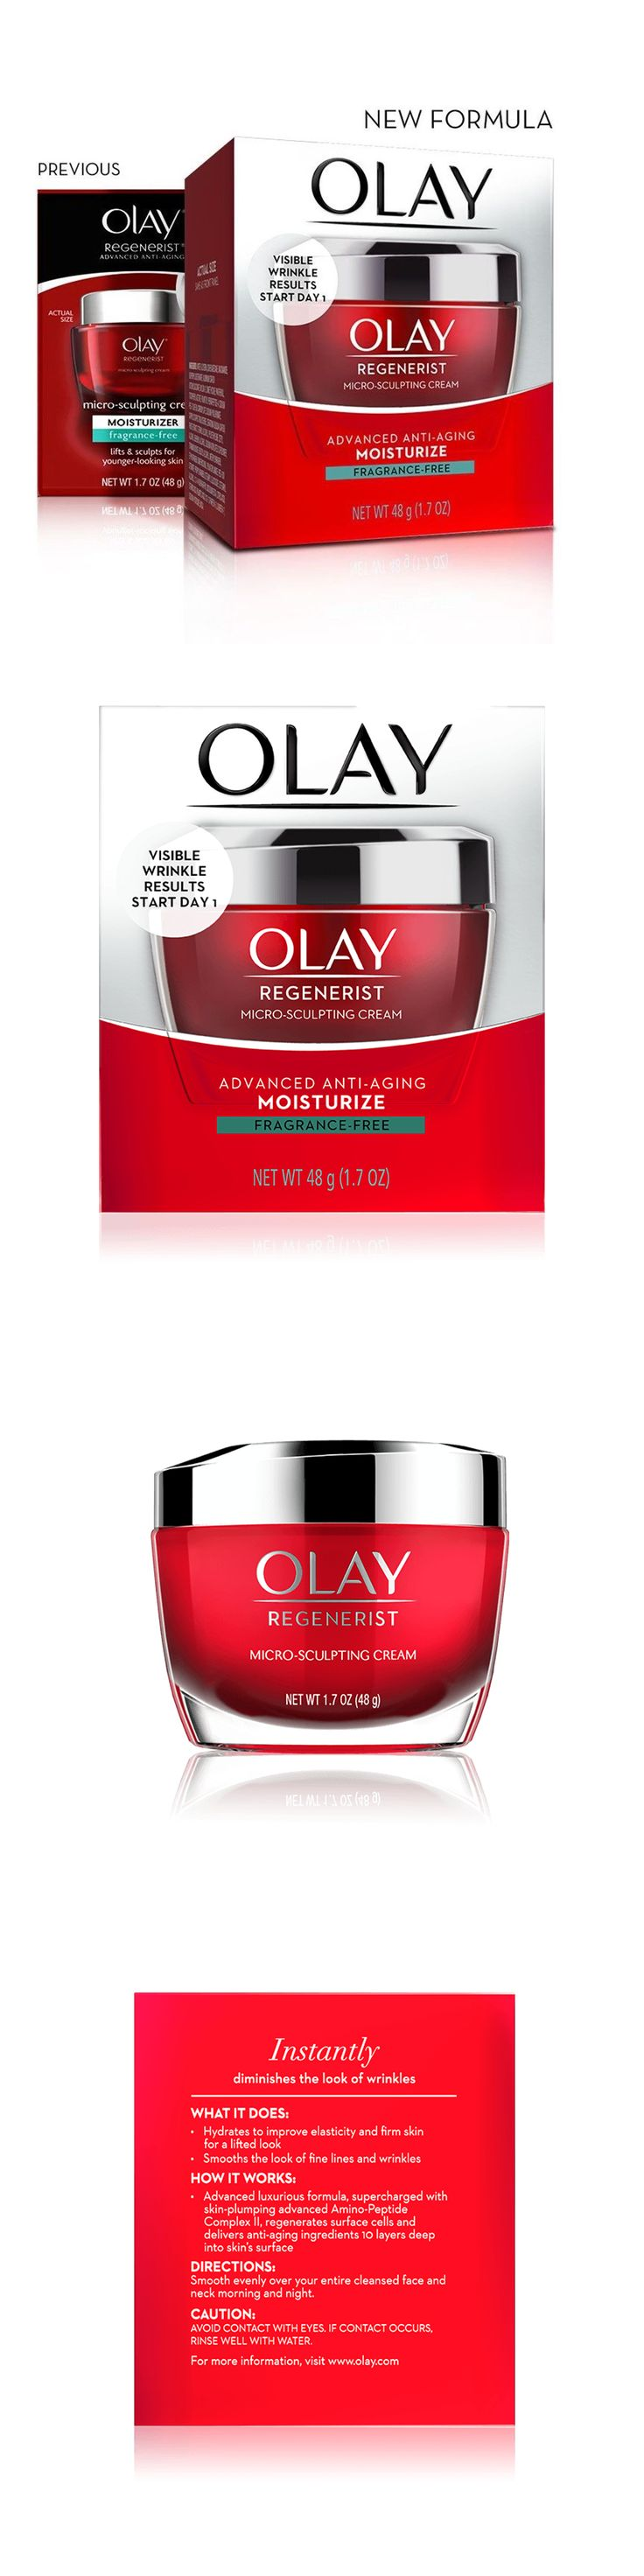 Anti-Aging Products: 2 Olay Regenerist Micro-Sculpting Cream Face Moisturizer 1.7 Oz Fragrance Free -> BUY IT NOW ONLY: $33.98 on eBay!